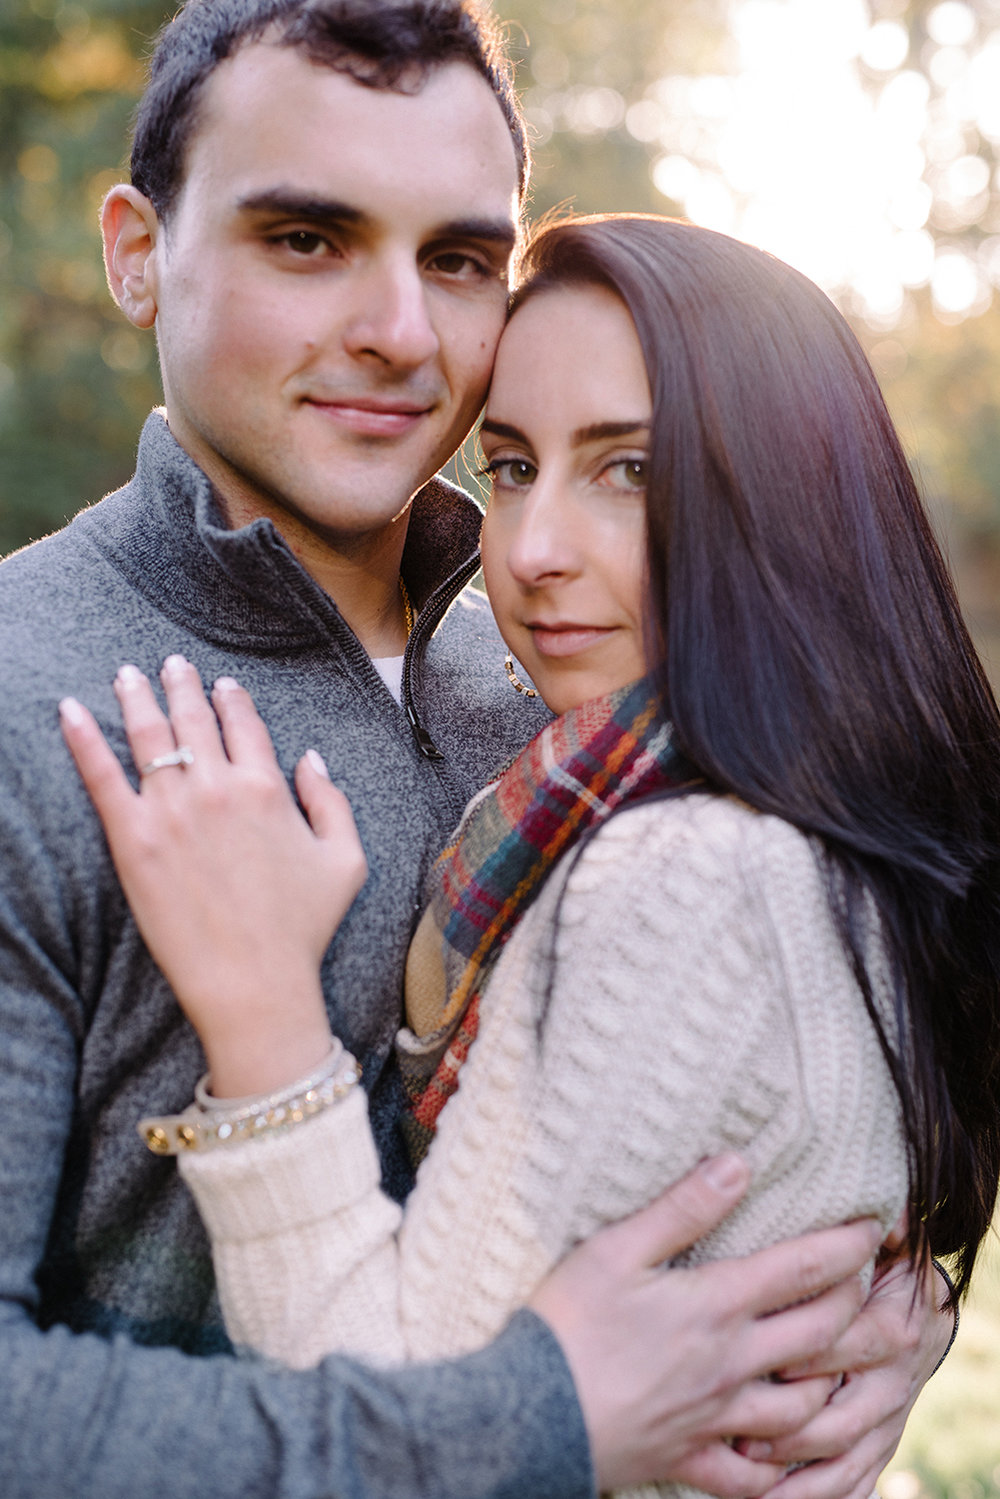 Melissa+Jeff- Local Park Engagement Session with Dog- Booth Park Nutley- New Jersey-Olivia Christina Photo-51.jpg